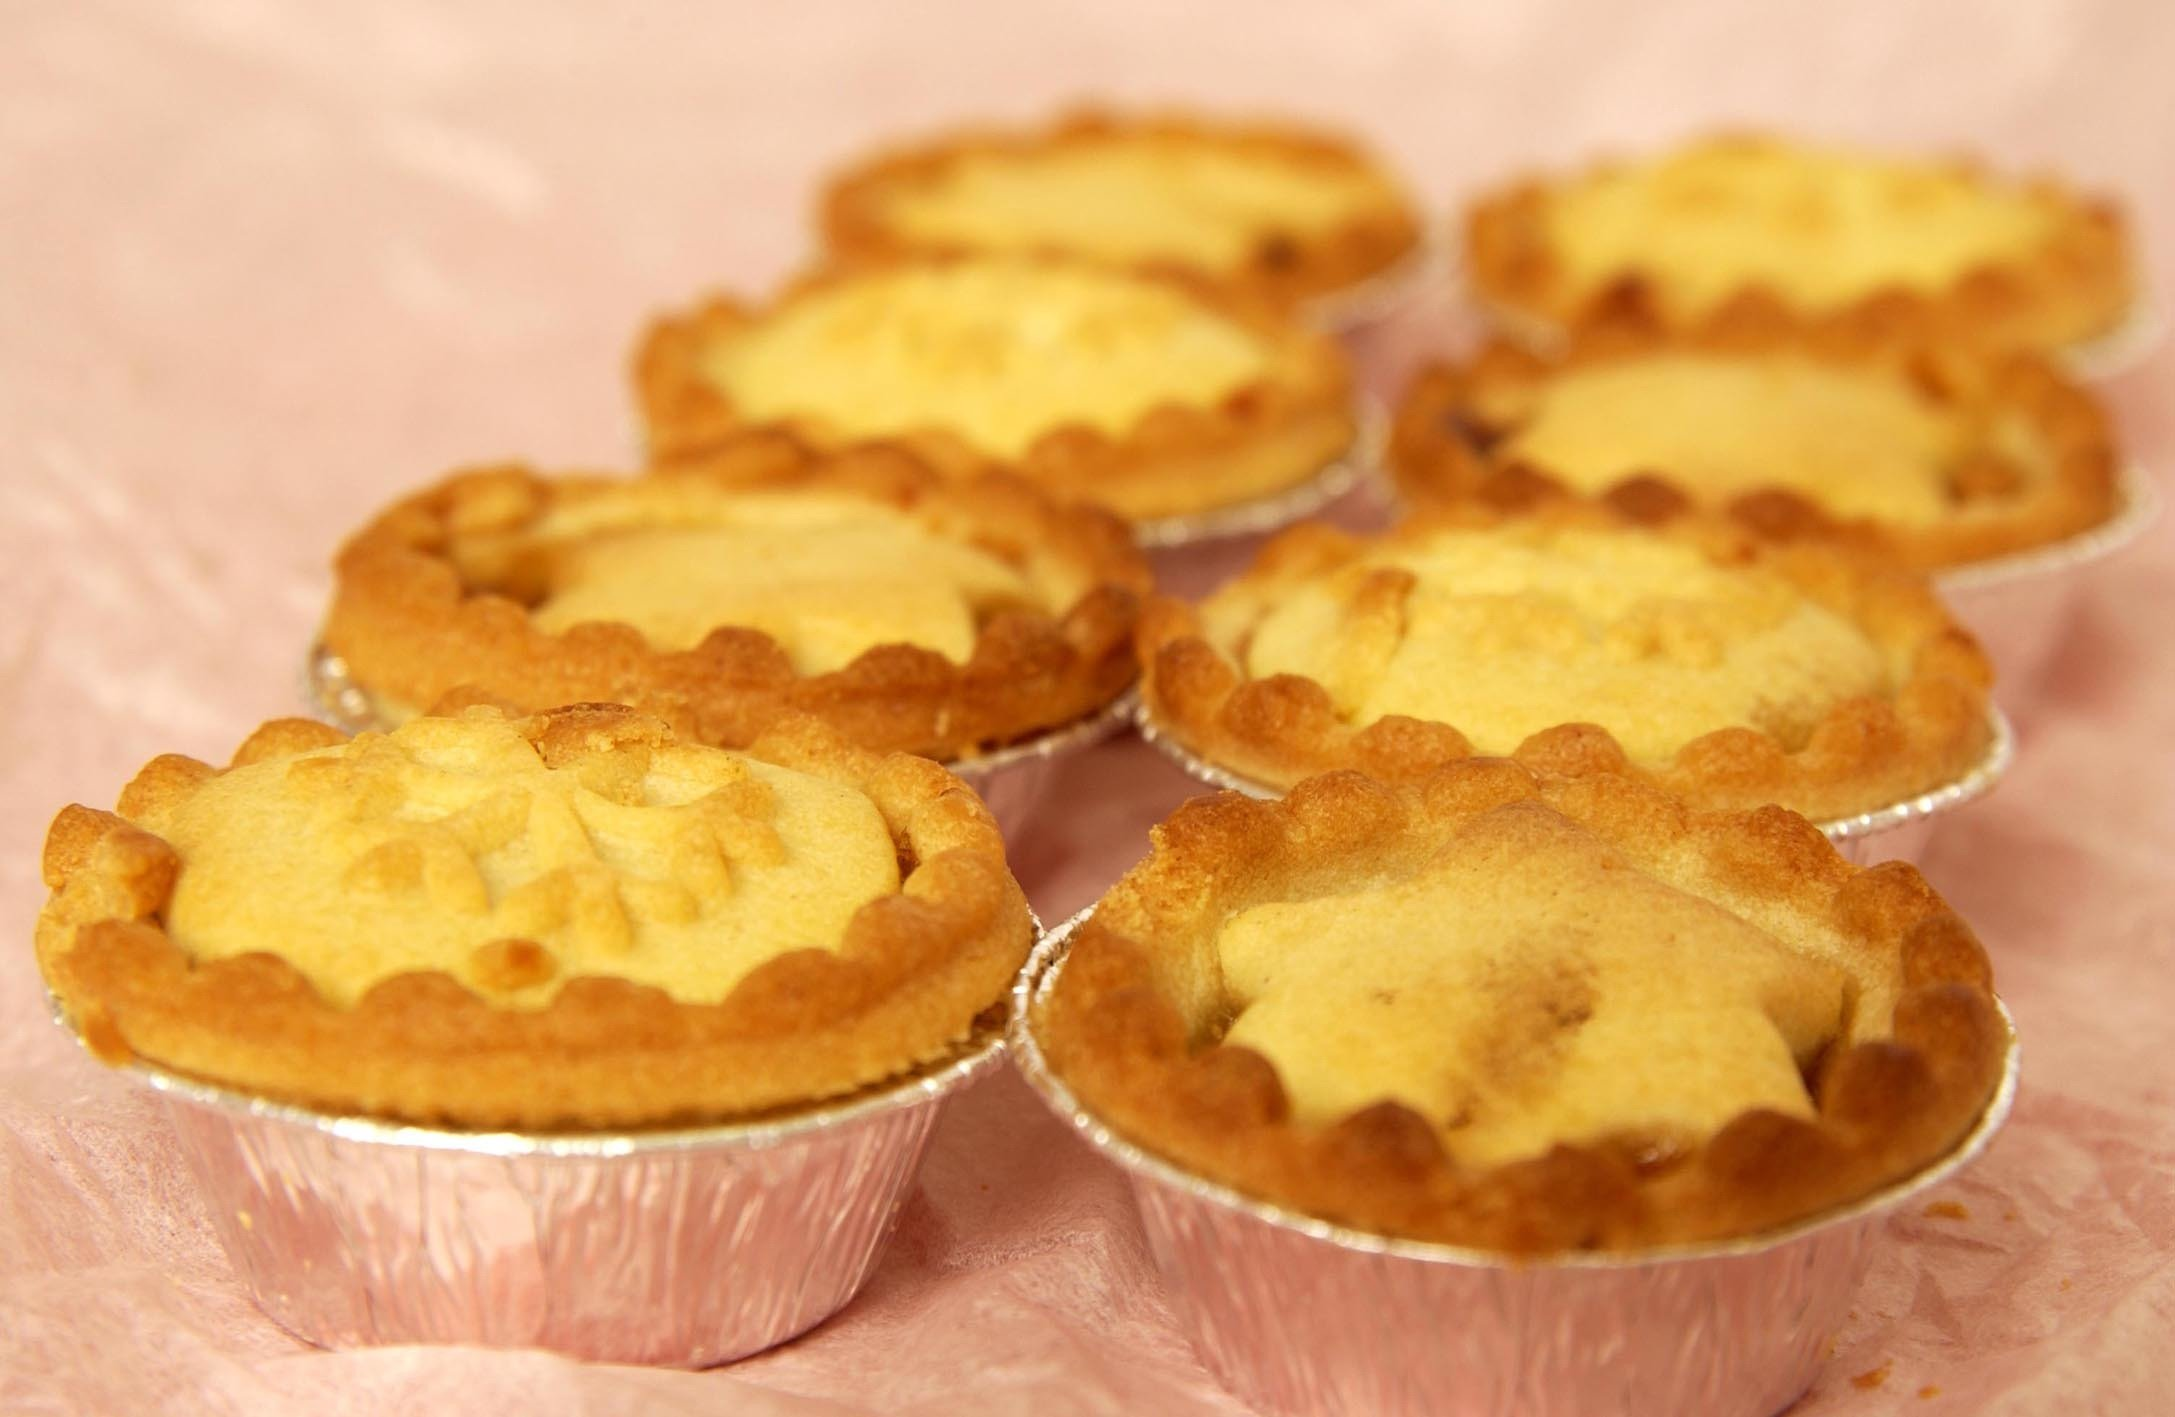 Festive food fans make early start as site sees spike in Christmas recipes